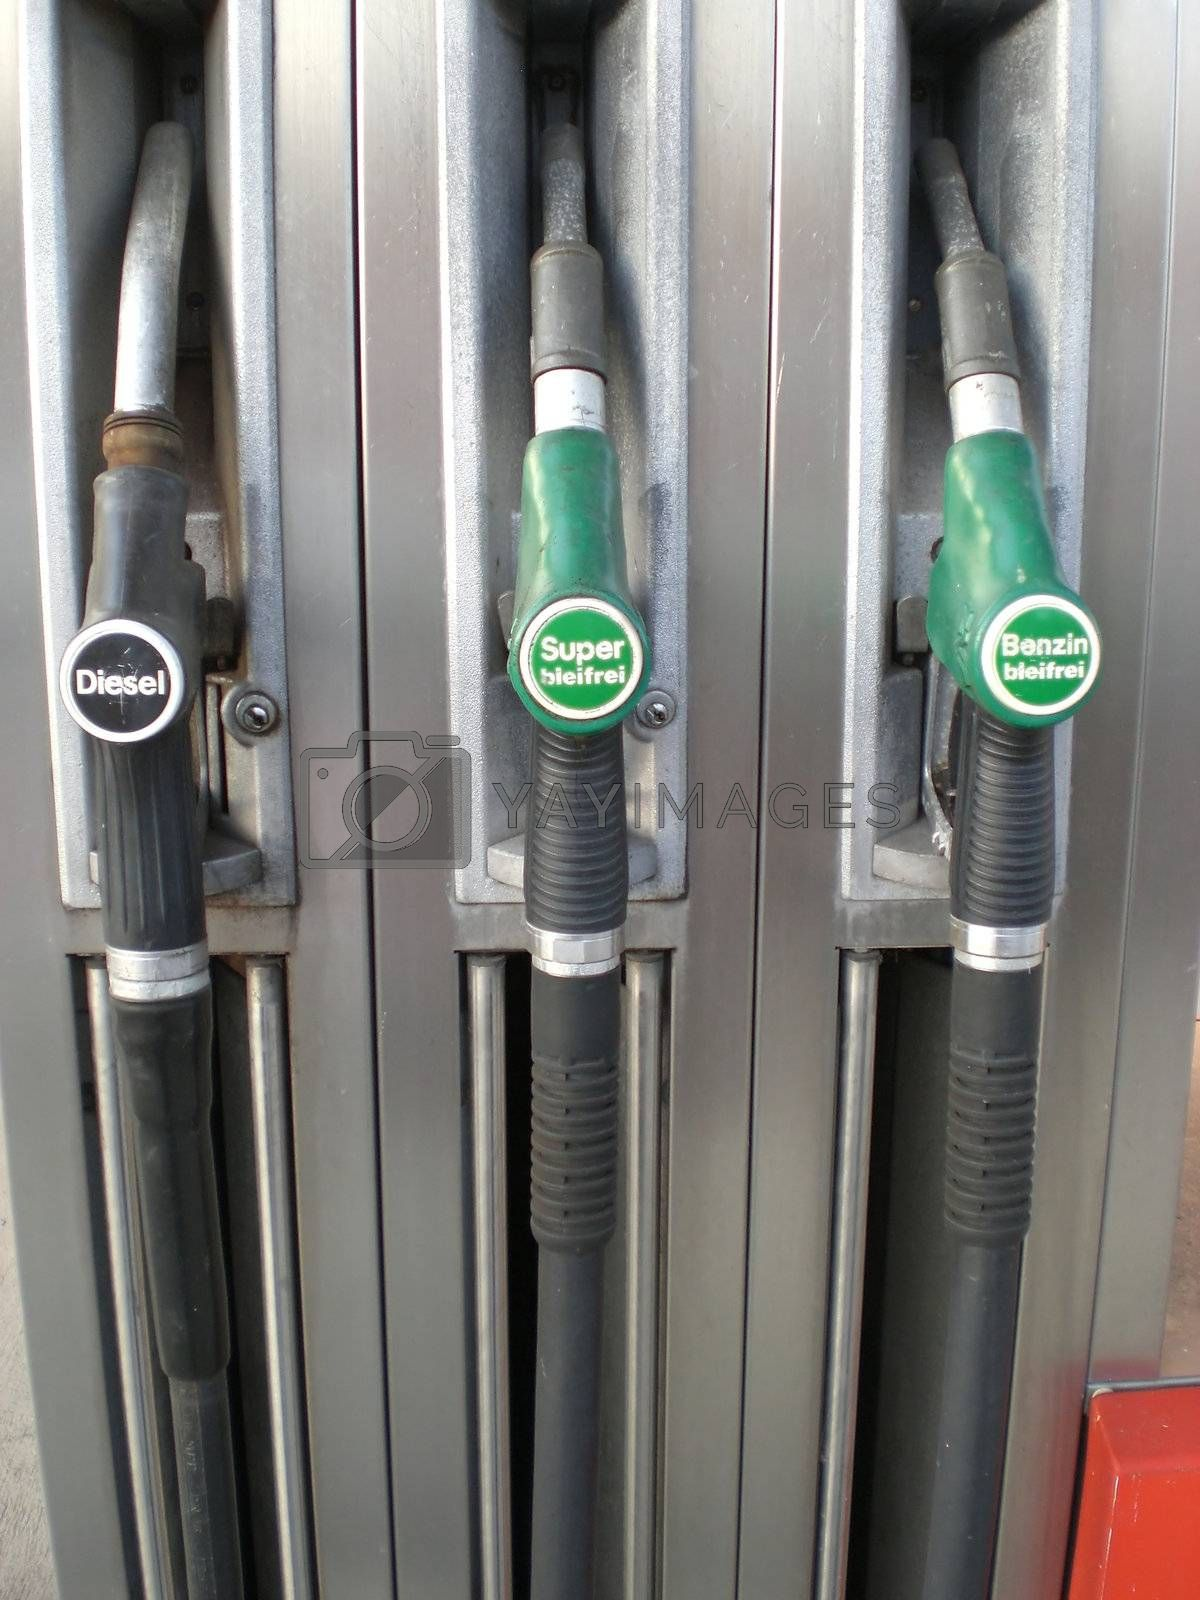 Detail of a gas filling station, Germany, no logos or trademarks, words say: diesel, leaded fuel, unleaded fuel